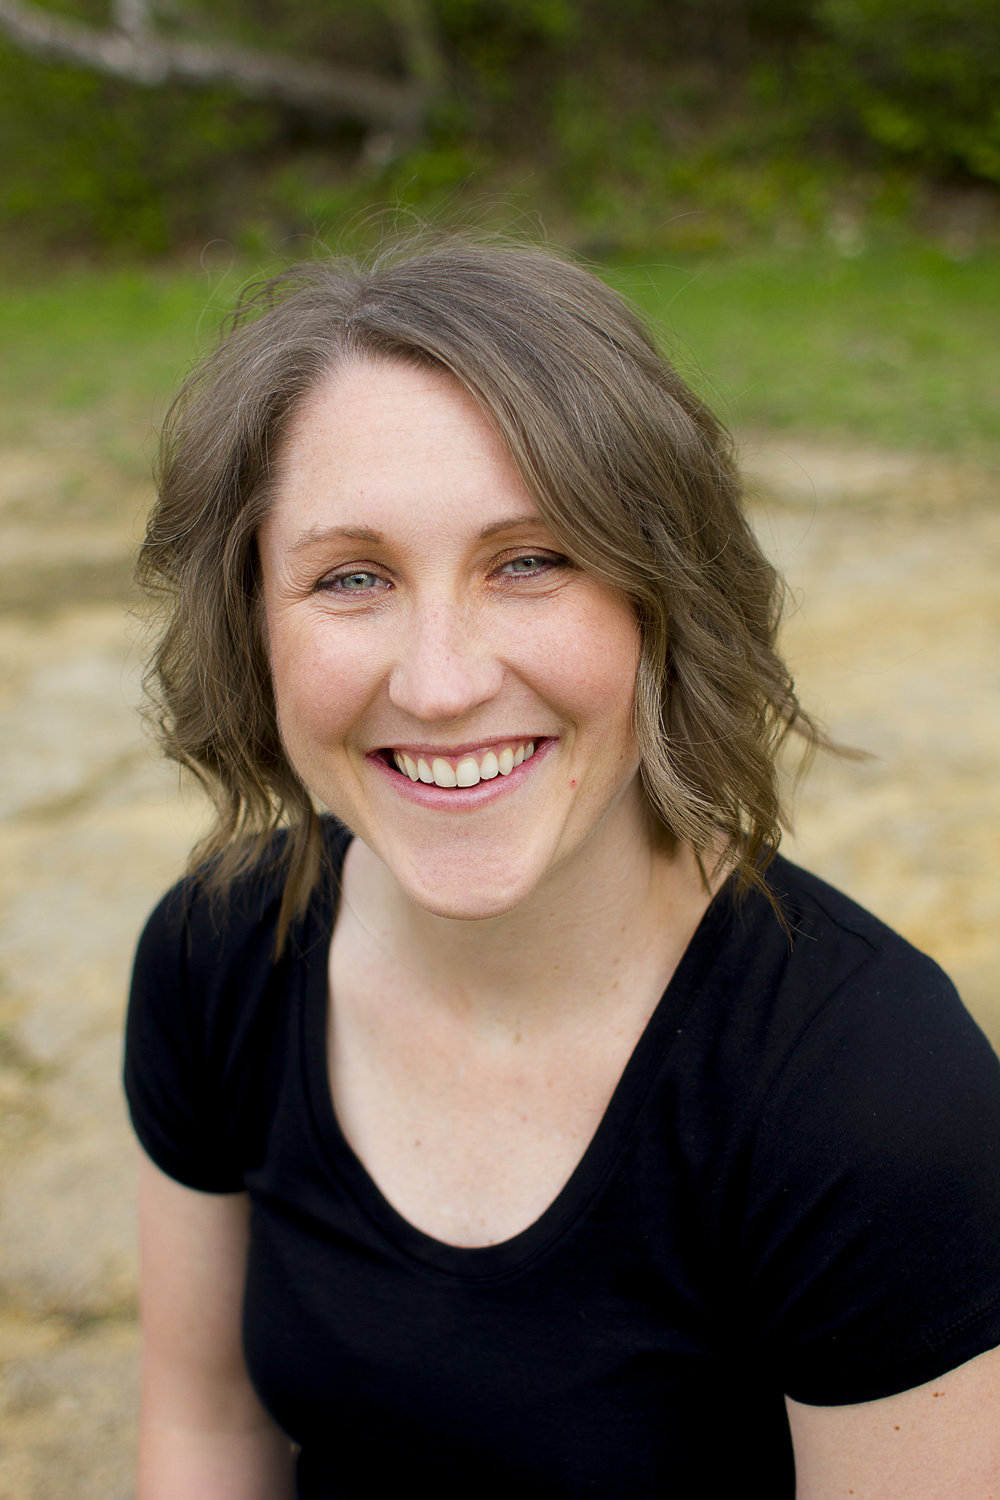 """Cait Larsen, DPT, CSCS, SFG 1,  MovNat 1  At ETHOS: Physical Therapist, Coach, Owner  Education: B.S in Exercise & Sport Science w/ focus in Strength & Conditioning; Doctor of Physical Therapy, StrongFirst Kettlebell SFG 1  Professional Background: High school & collegiate athletics development, Sports & orthopedic rehab, Breast oncology specialist, Manual therapy training  Athletic Background: 3-sport HS athlete, NCAA All-American Track & Field at UW- La Crosse. Coached Sprints at UWL. Now enjoys biking (road & fat-tire), hiking, and all outdoor sports, running after 3 little boys.  Cait's """"Why"""": To empower and facilitate growth so that we strive for our full potential.  Quote: """"I know the price of success: dedication, hard work, and an unremitting devotion to the things you want to see happen."""" -Frank Lloyd Wright"""